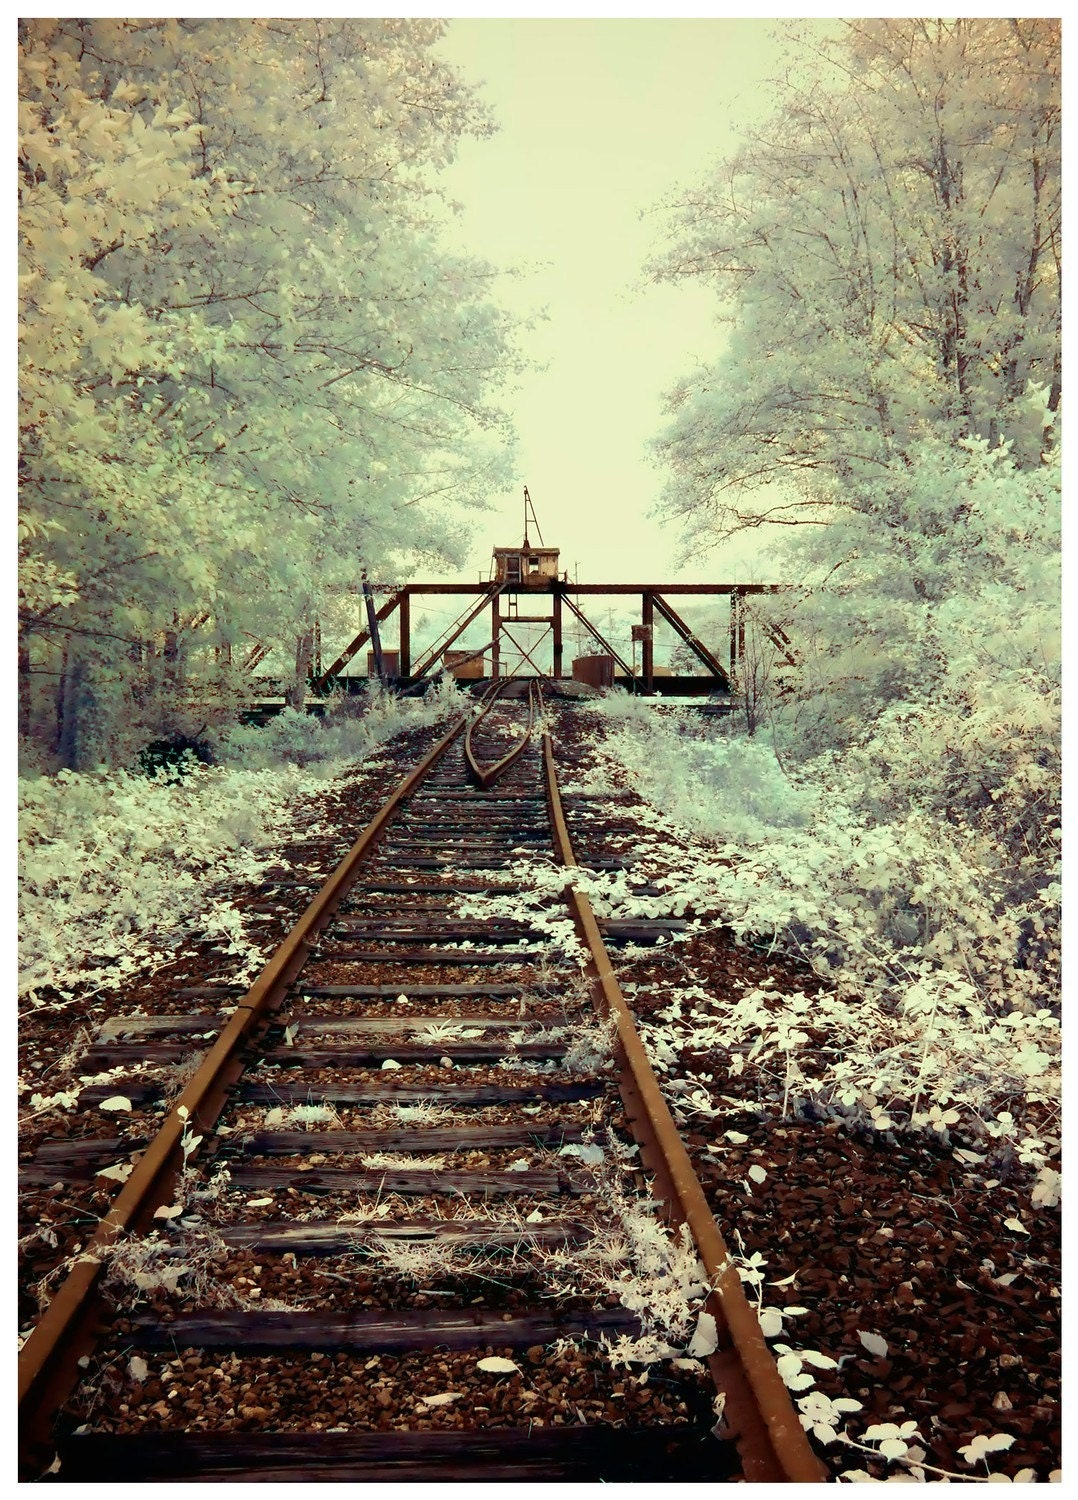 Old Train Bridge - infrared photographic print by Kevan Moran Aponte